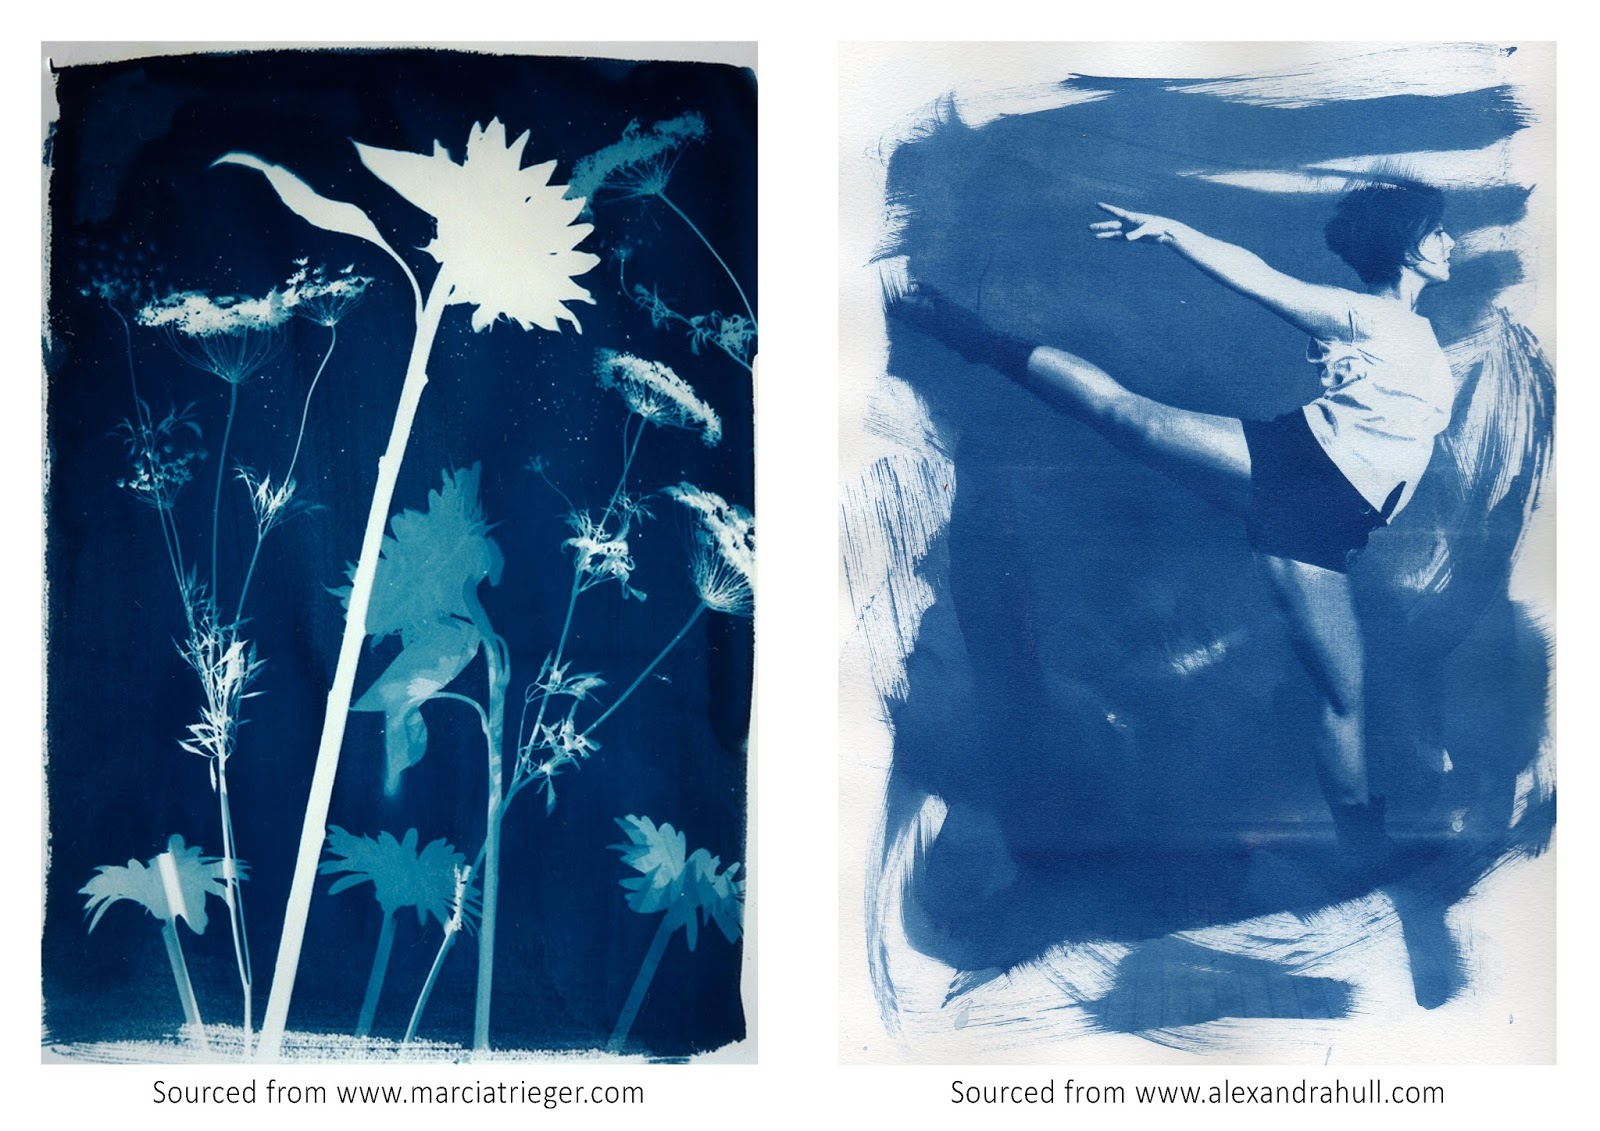 We are making cyanotype prints from scratch shannon scientific as well as using negatives to print there is also the contact process where objects are placed directly onto the paper surface if light cannot break the malvernweather Image collections